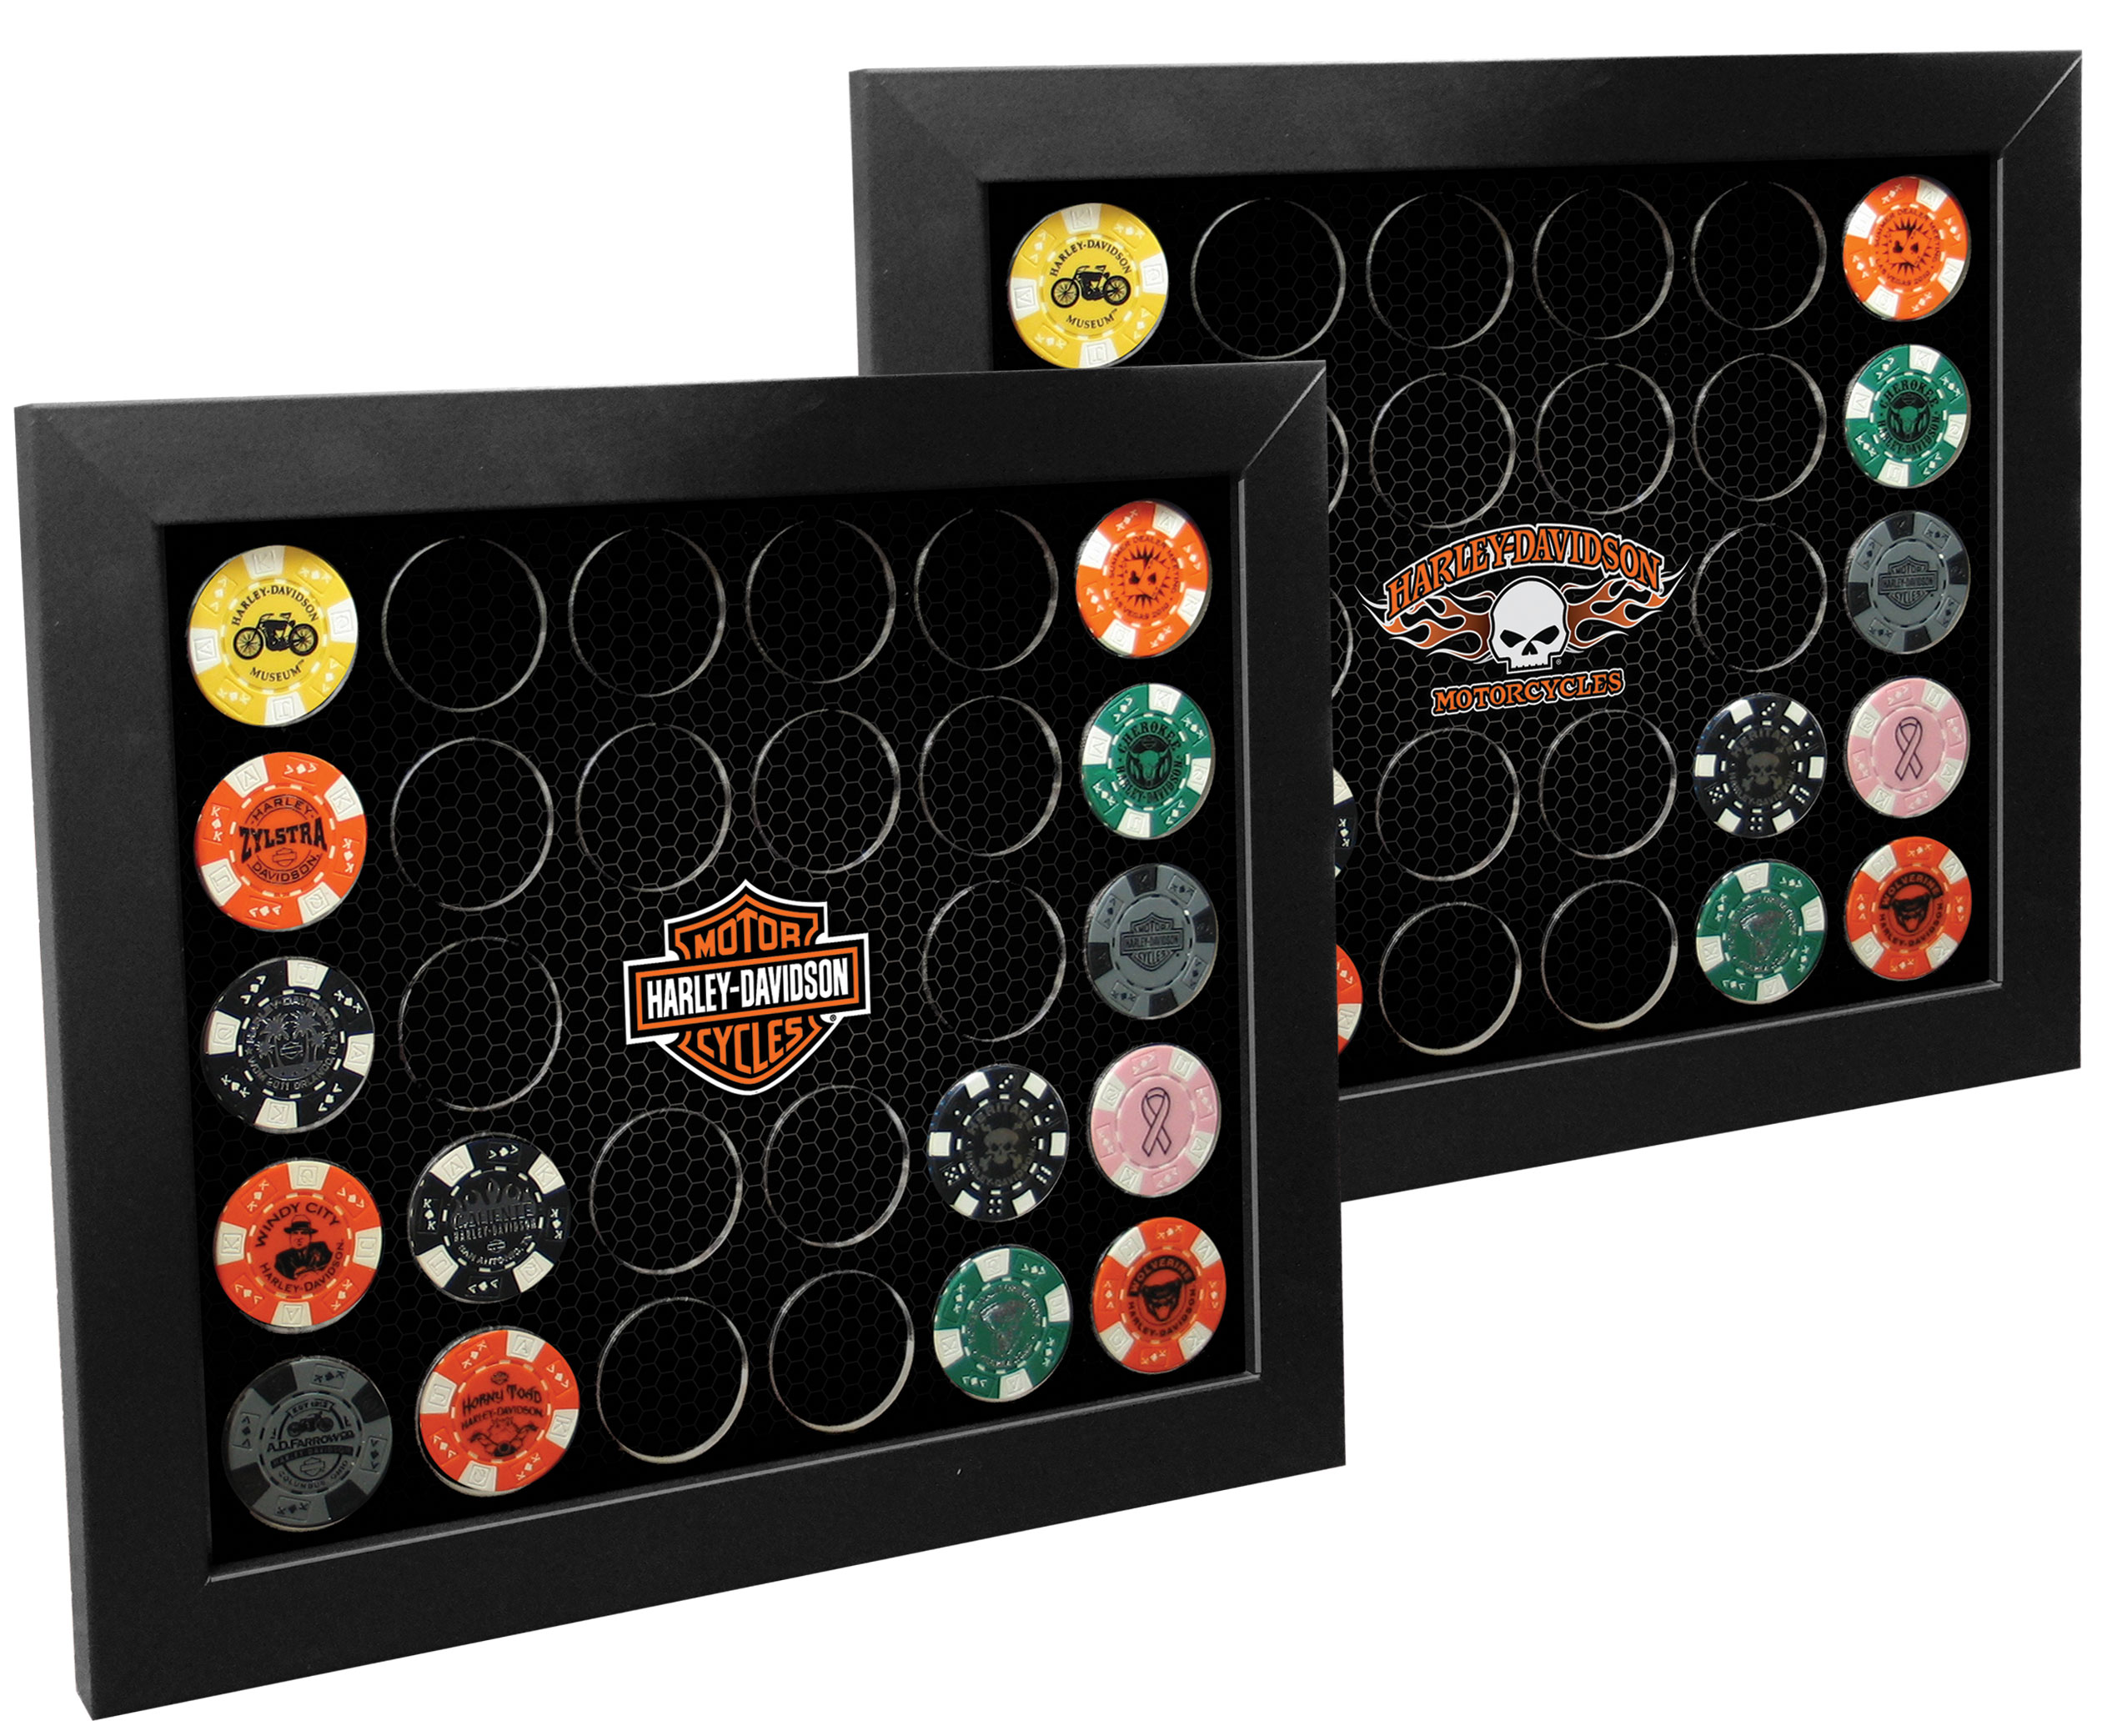 harley davidson black 28 poker chip collectors frame